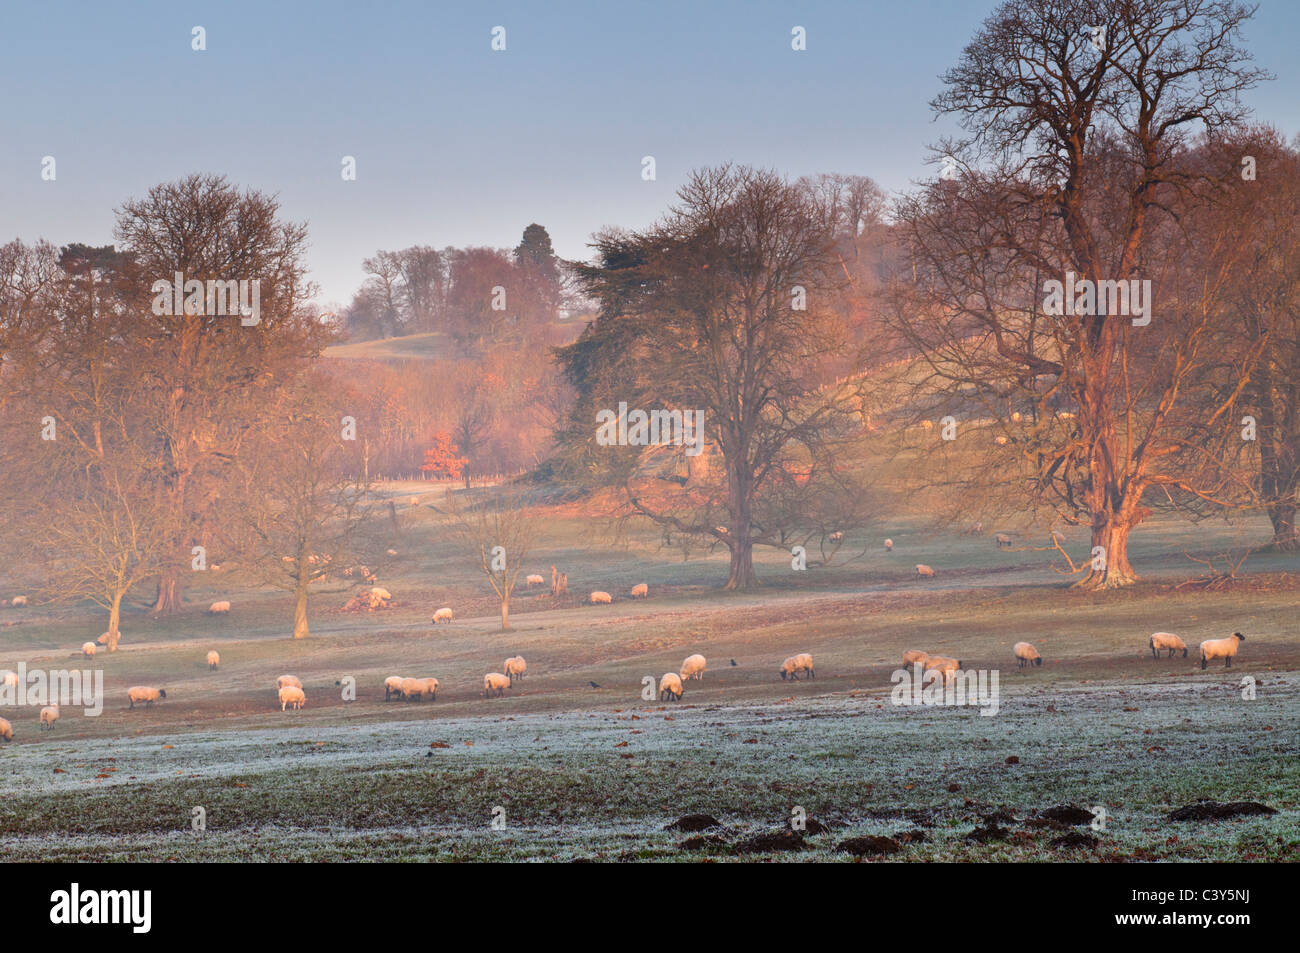 Sheep grazing, foggy winter afternoon, Stanway, Gloucestershire, Cotswolds, UK Stock Photo